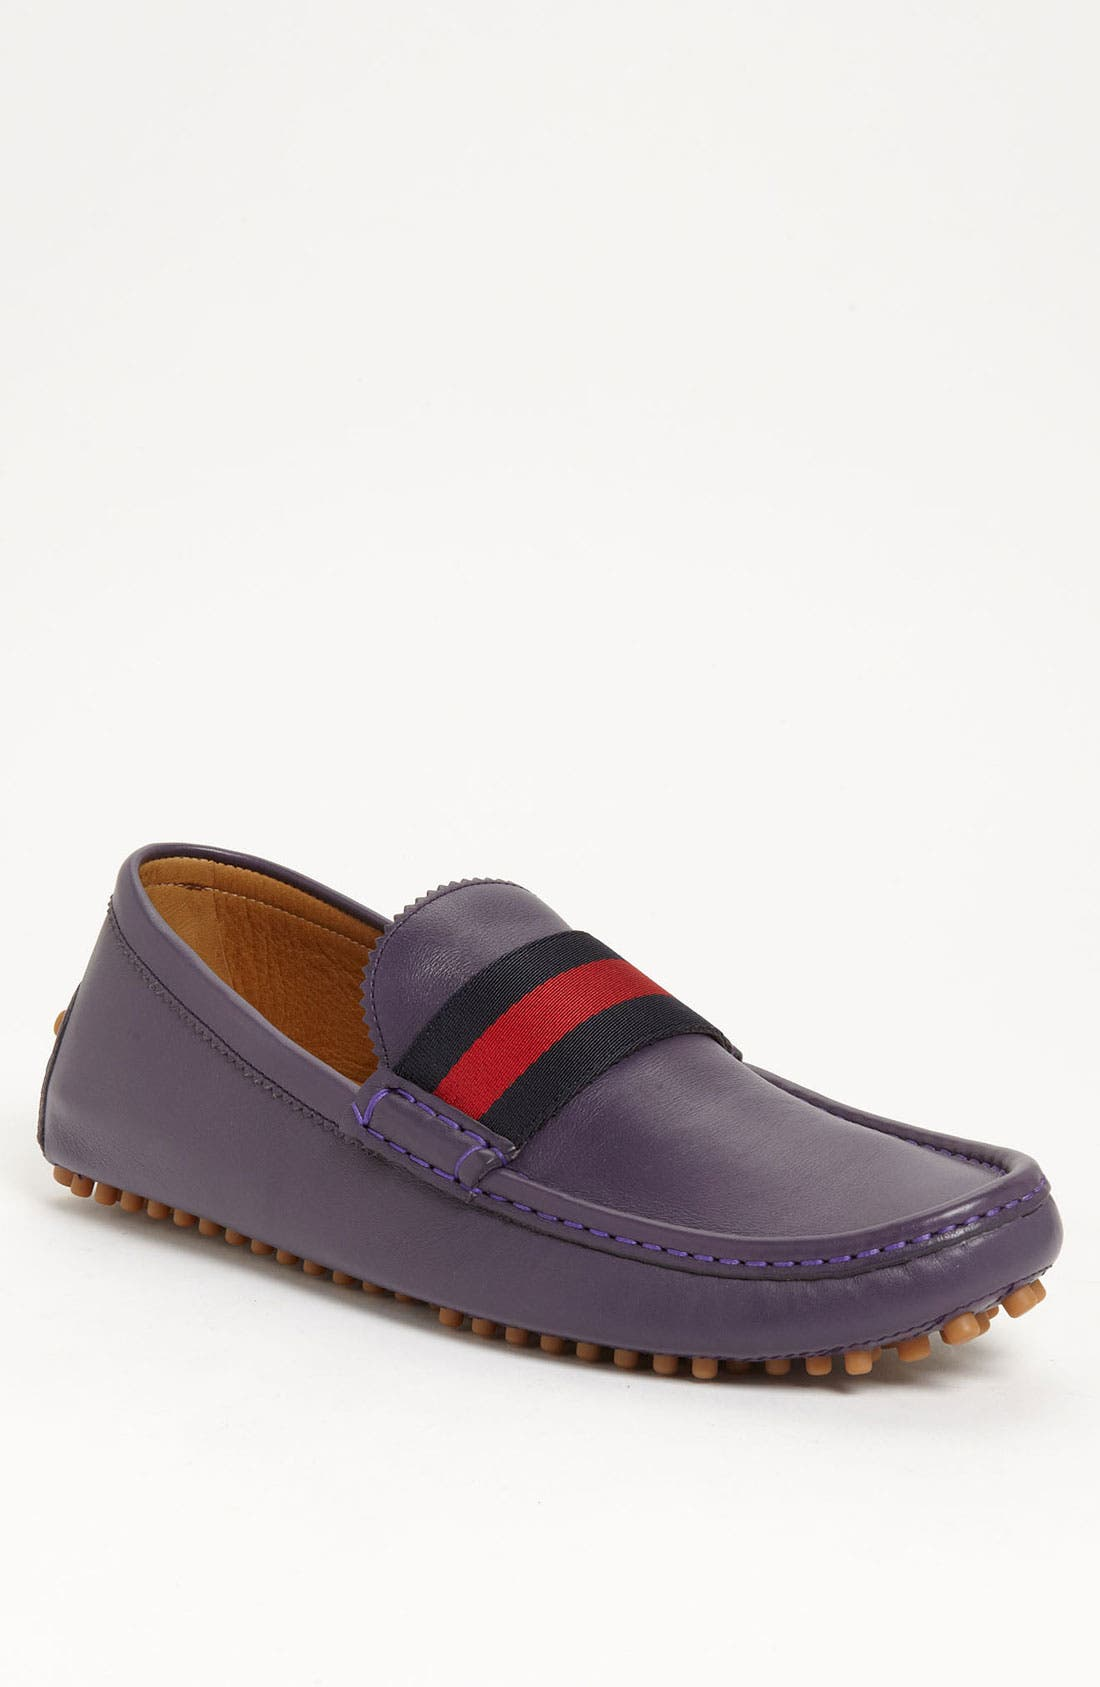 Alternate Image 1 Selected - Gucci 'New Auger' Driving Shoe